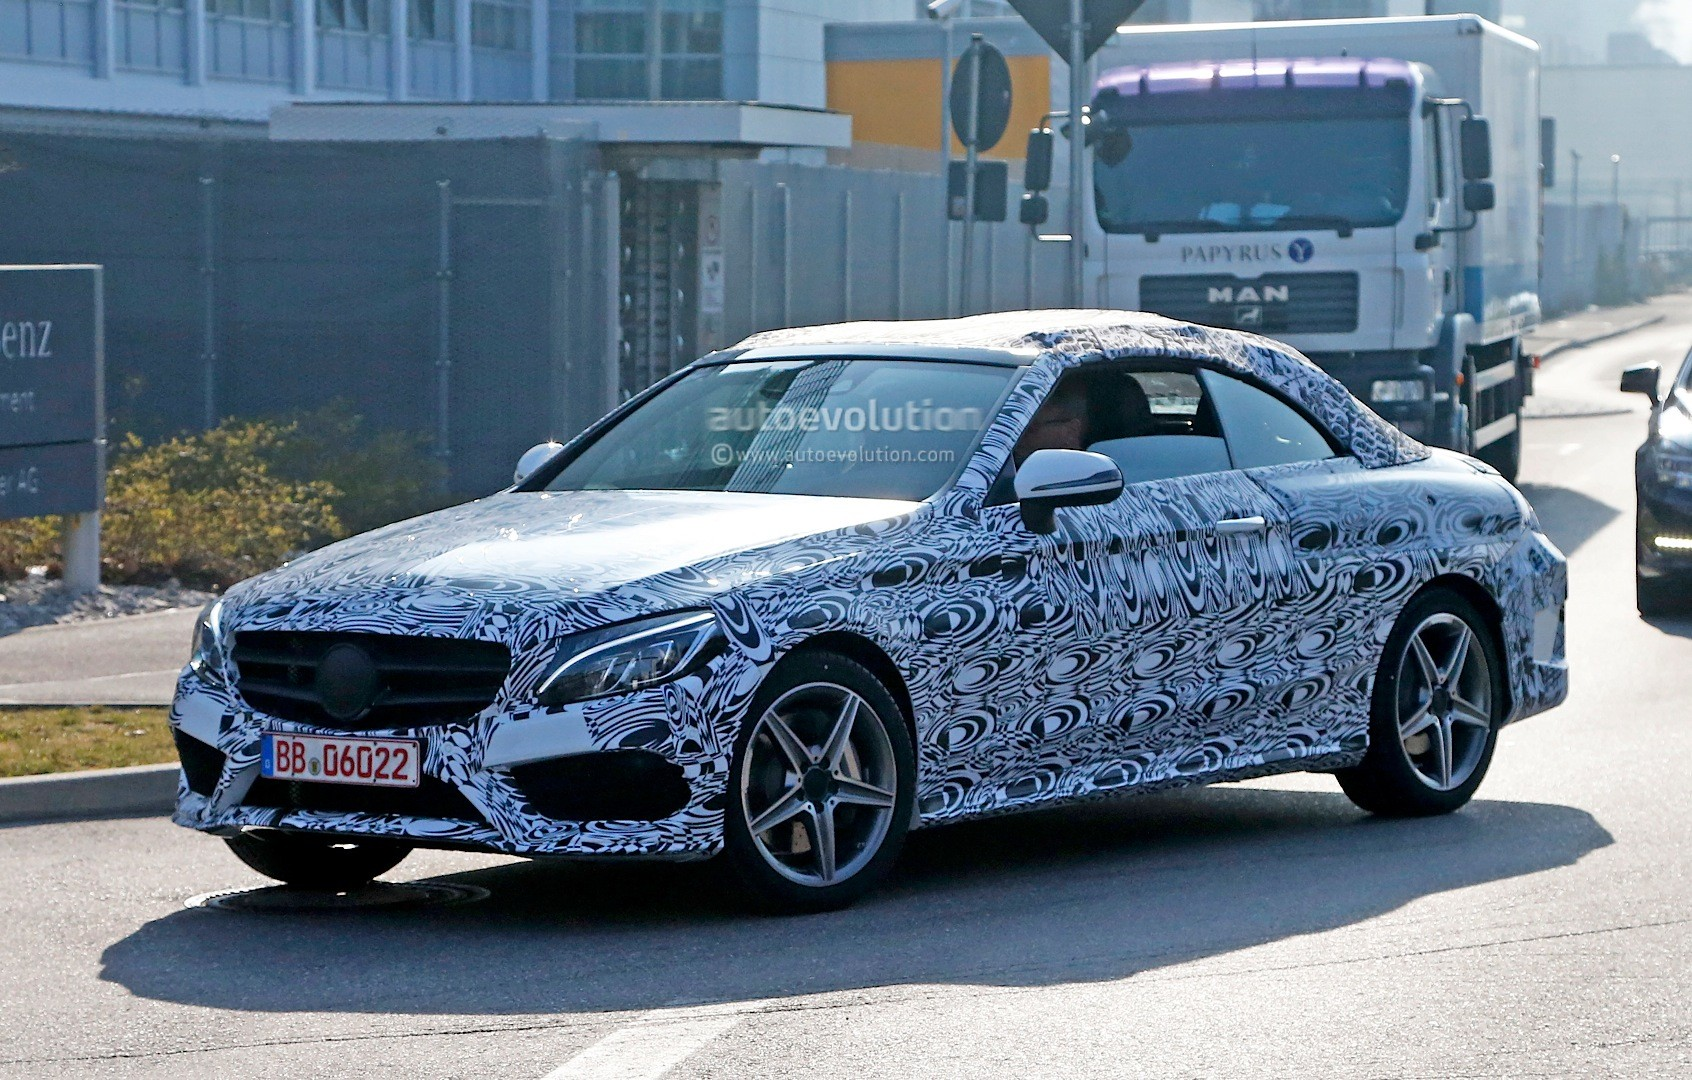 spyshots all new mercedes c class cabriolet a205 gets amg line body kit updated autoevolution. Black Bedroom Furniture Sets. Home Design Ideas